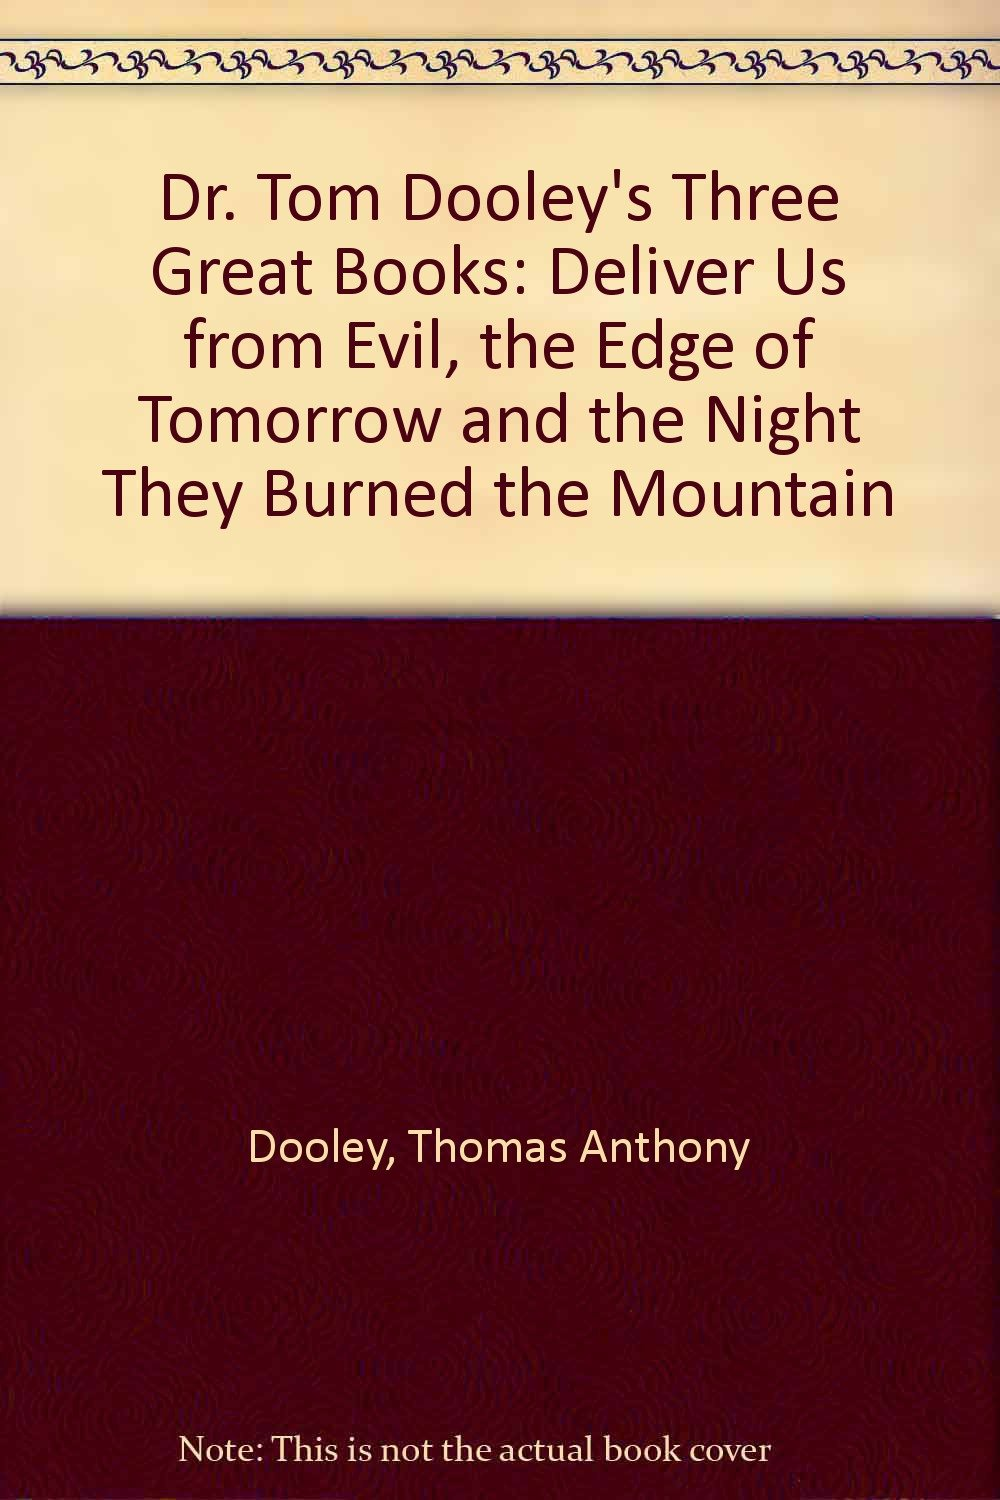 Dr. Tom Dooley's Three Great Books: Deliver Us from Evil, the Edge of Tomorrow and the Night They Burned the Mountain